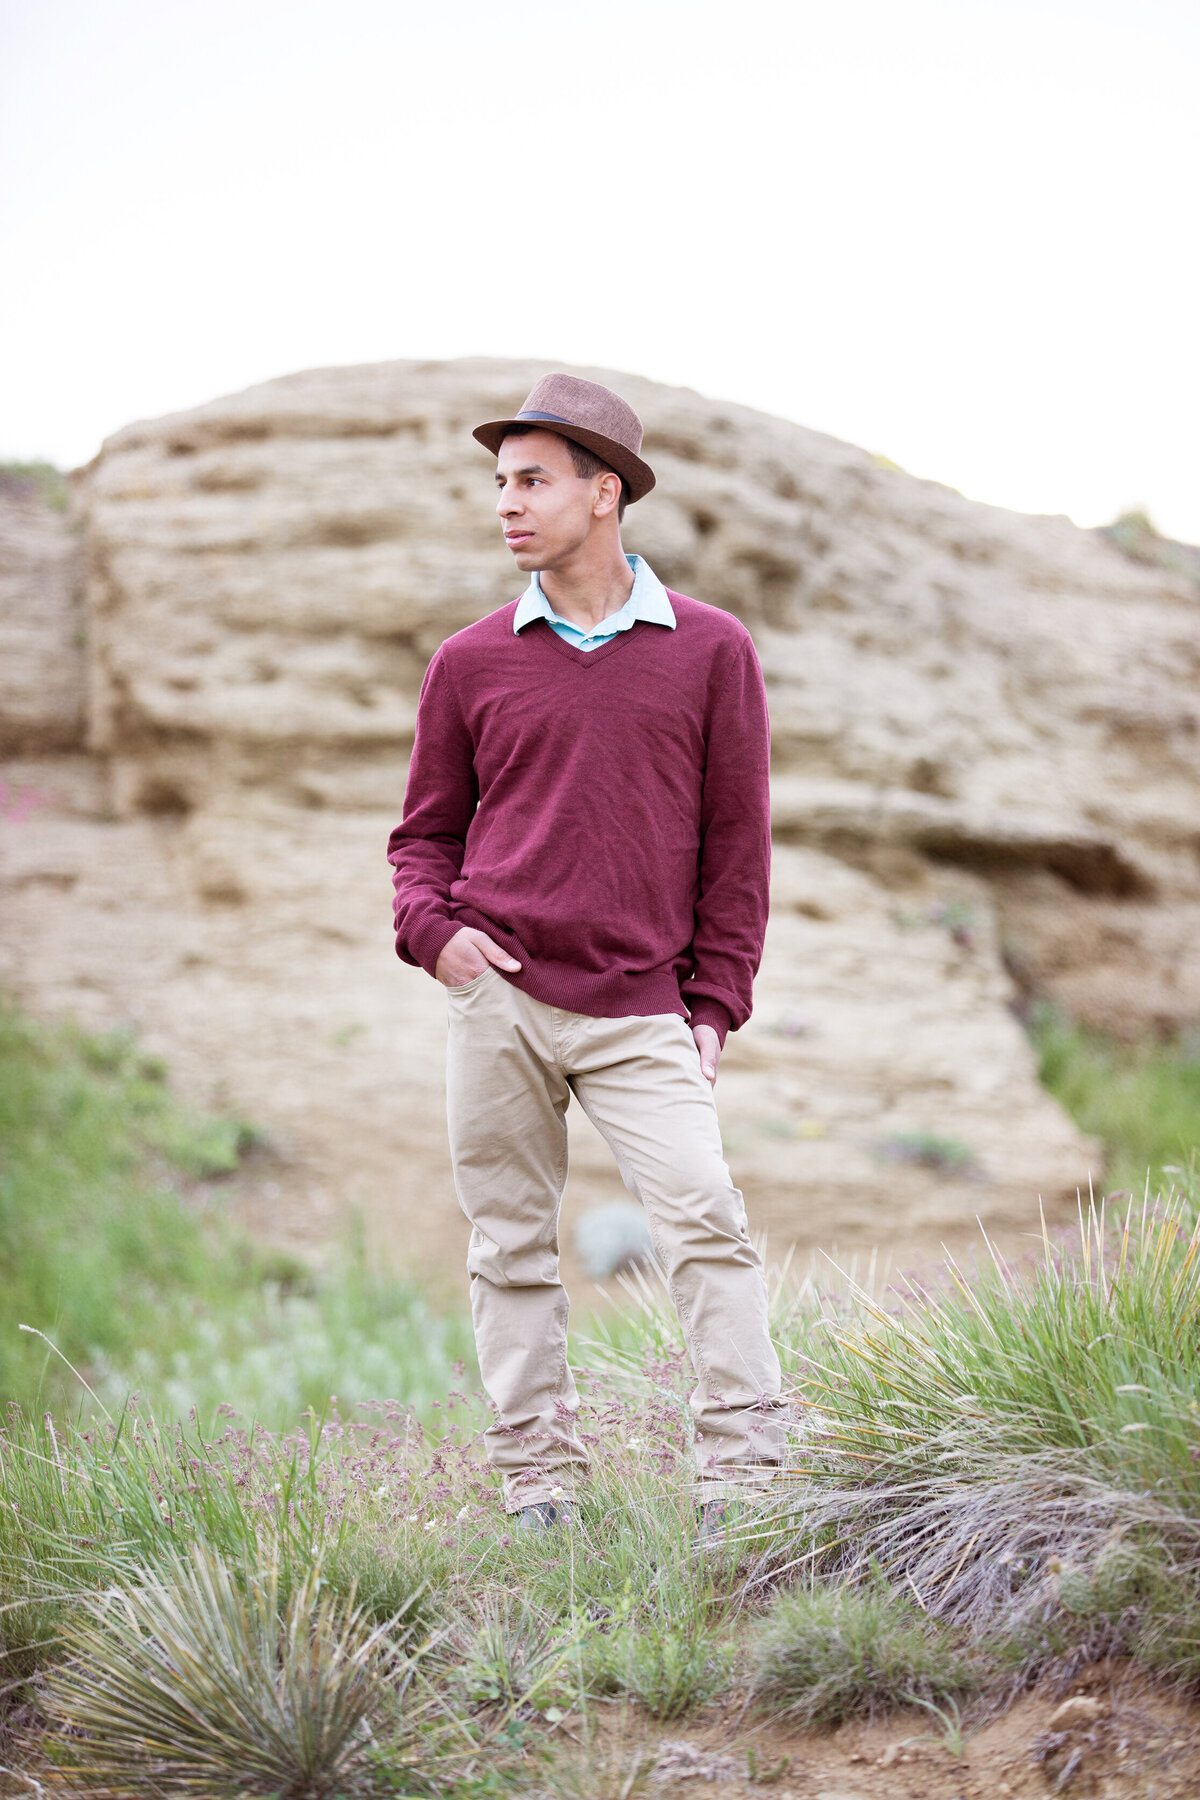 pictures of high school senior wearing maroon shirt, kakis and hat. Photographed at Swords Park with yucca plants near the airport in billings mt.